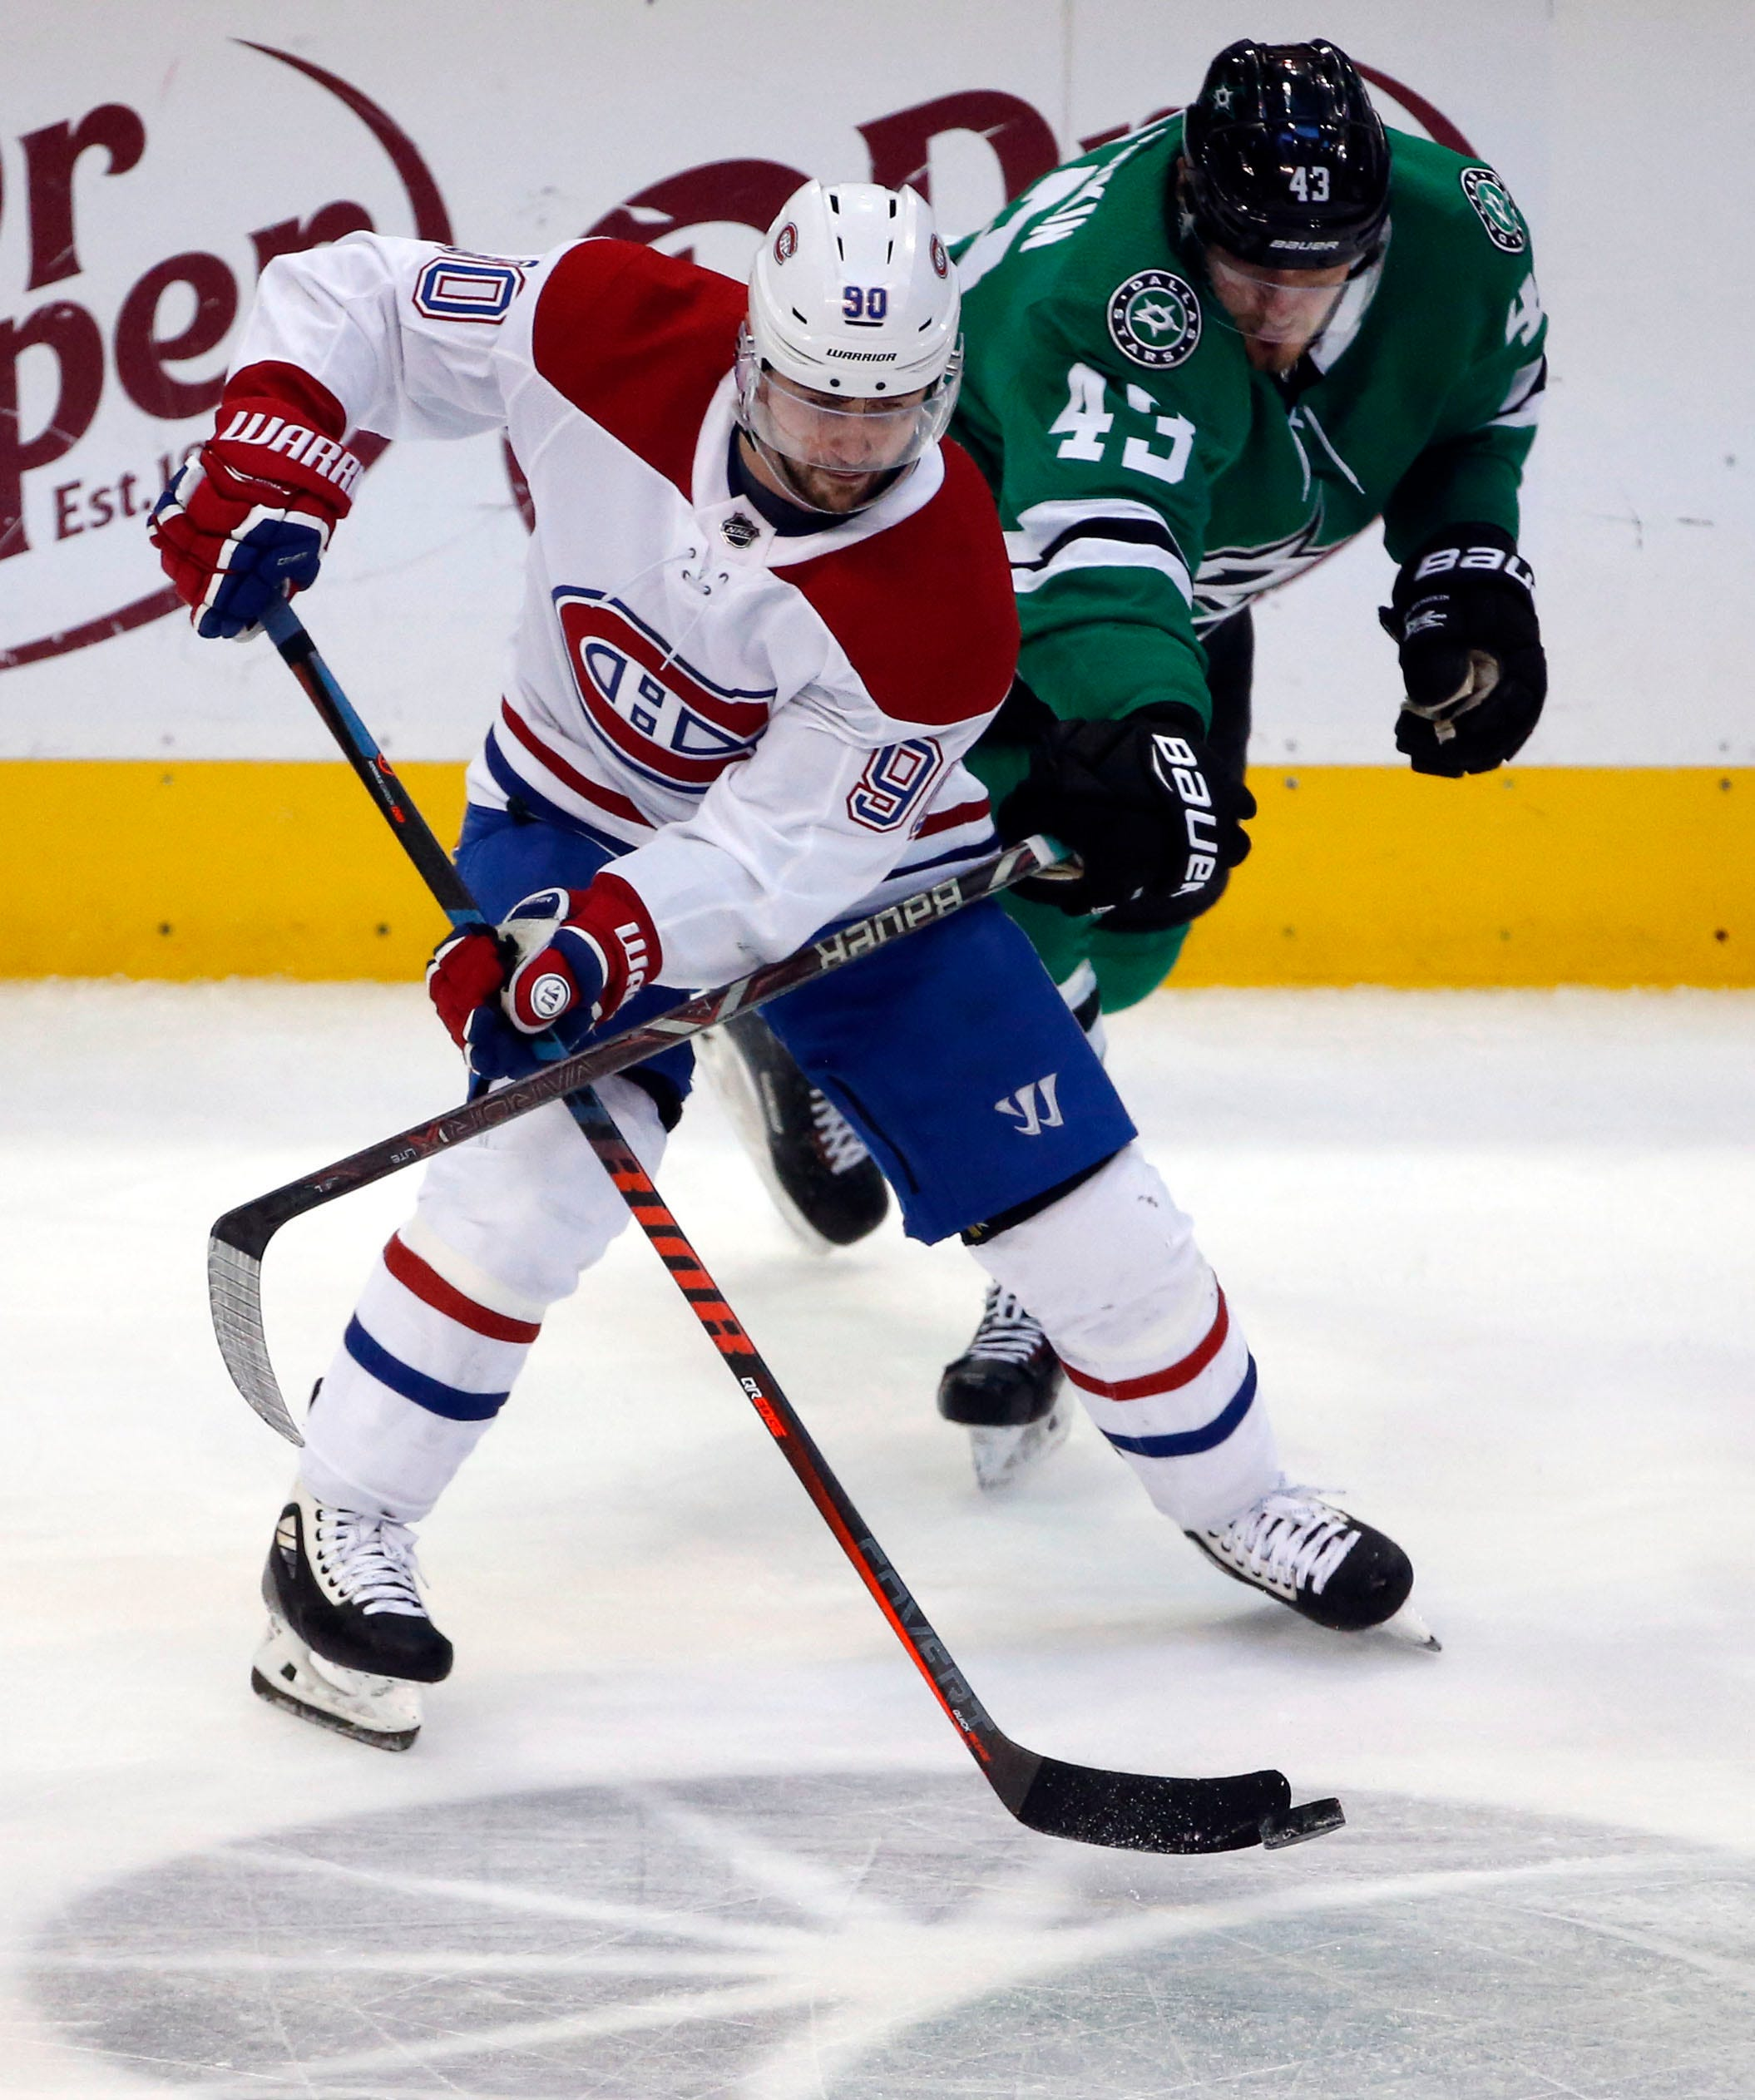 Petry, Danault lift Canadiens to 3-2 OT win against Stars